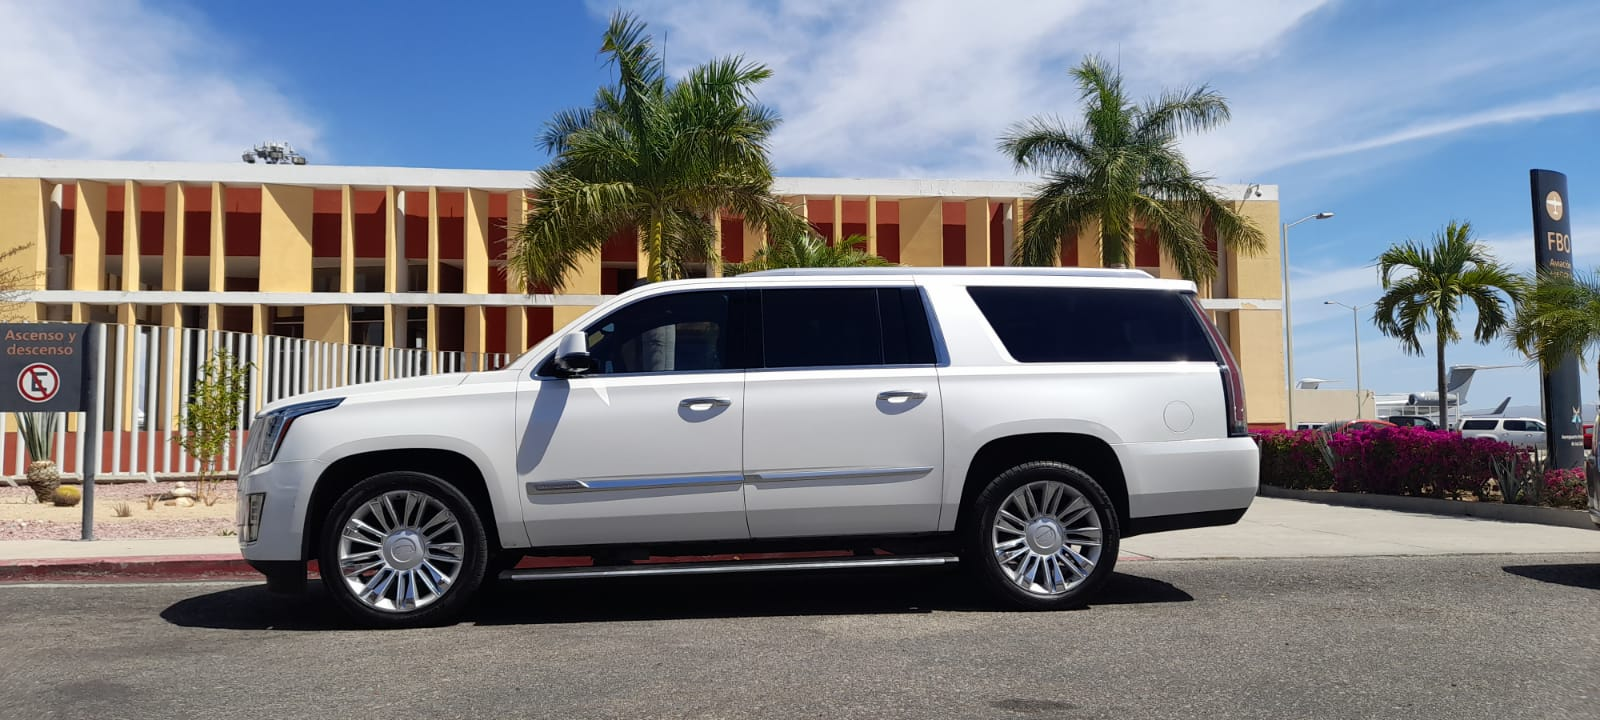 Cabo Airport Shuttle Guide for 2021 transportation